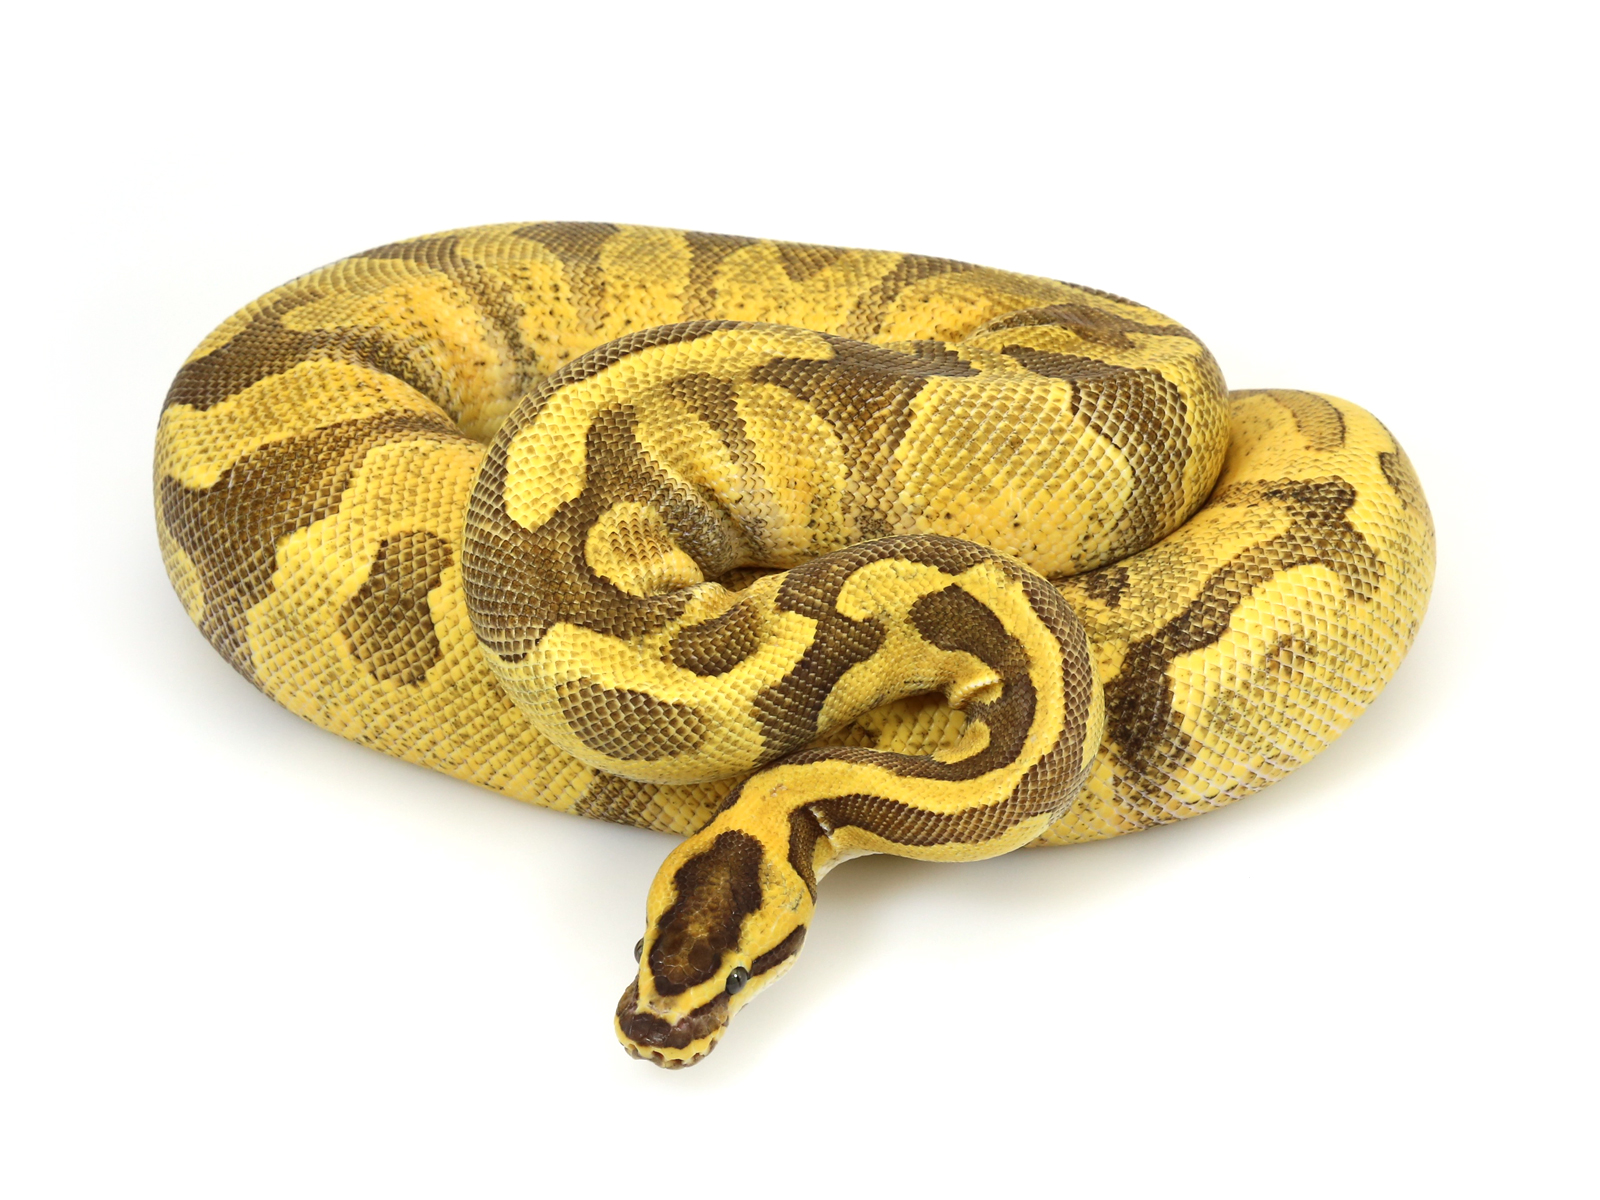 Super Enchi Yellow Belly Fire